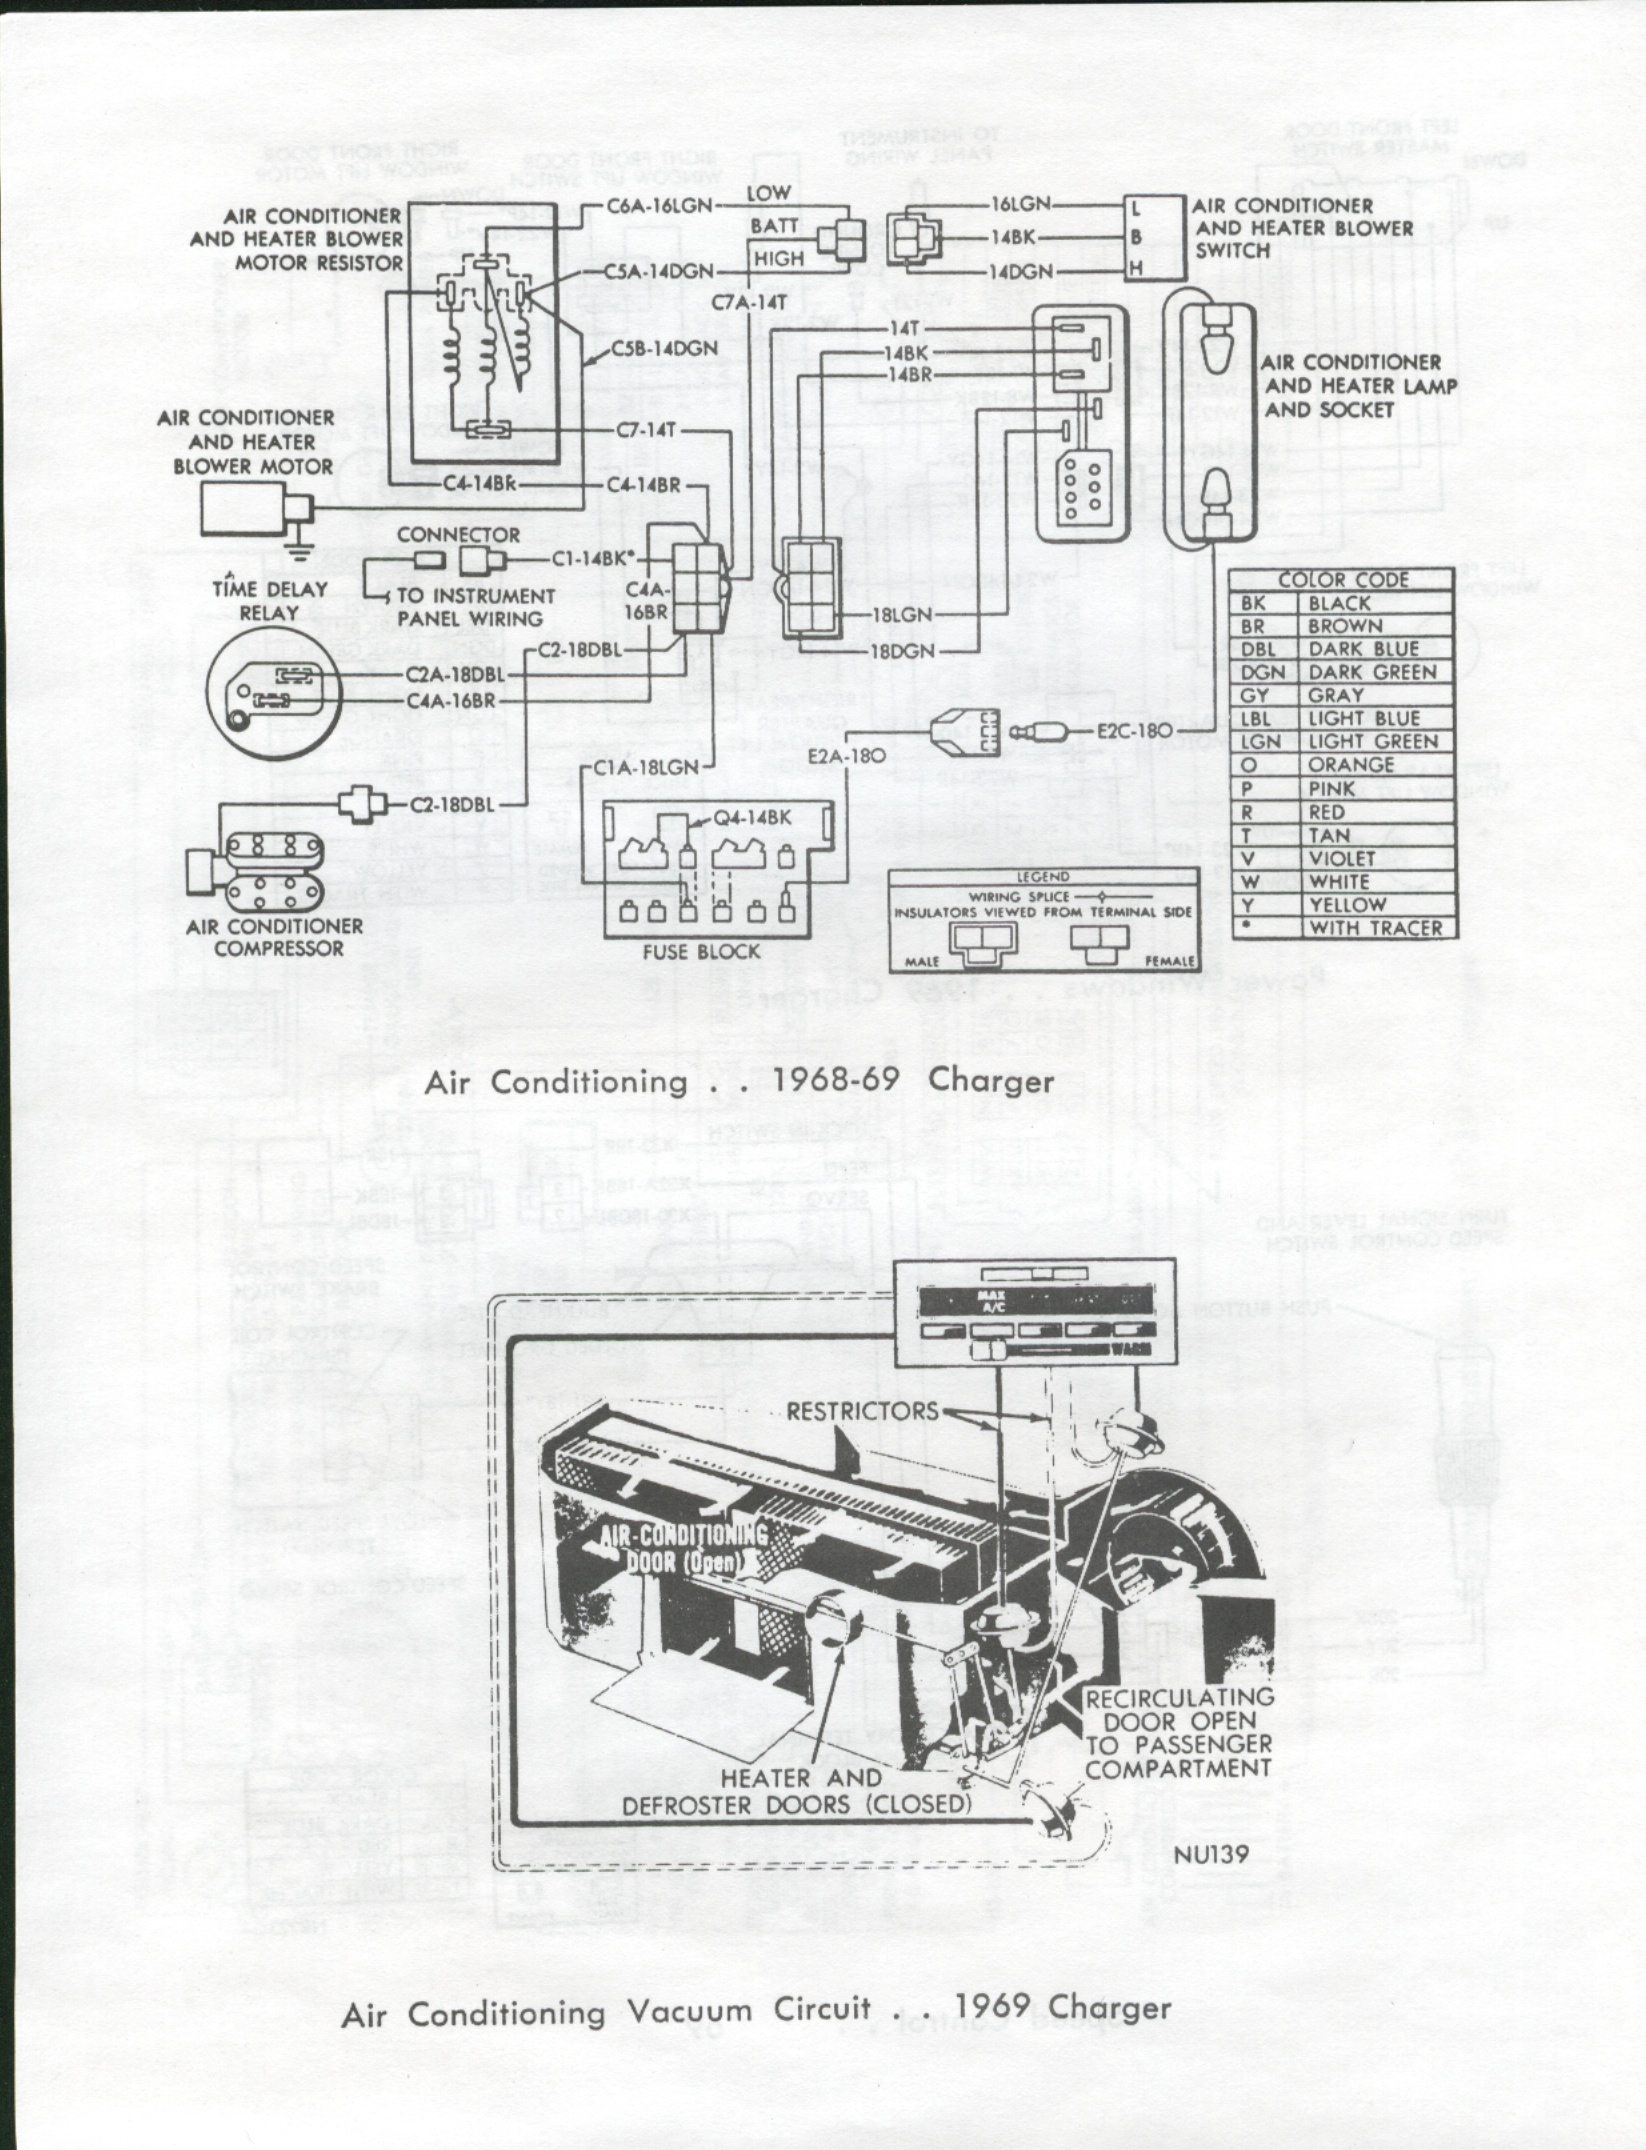 67 Camaro Instrut Panel Wiring Diagram